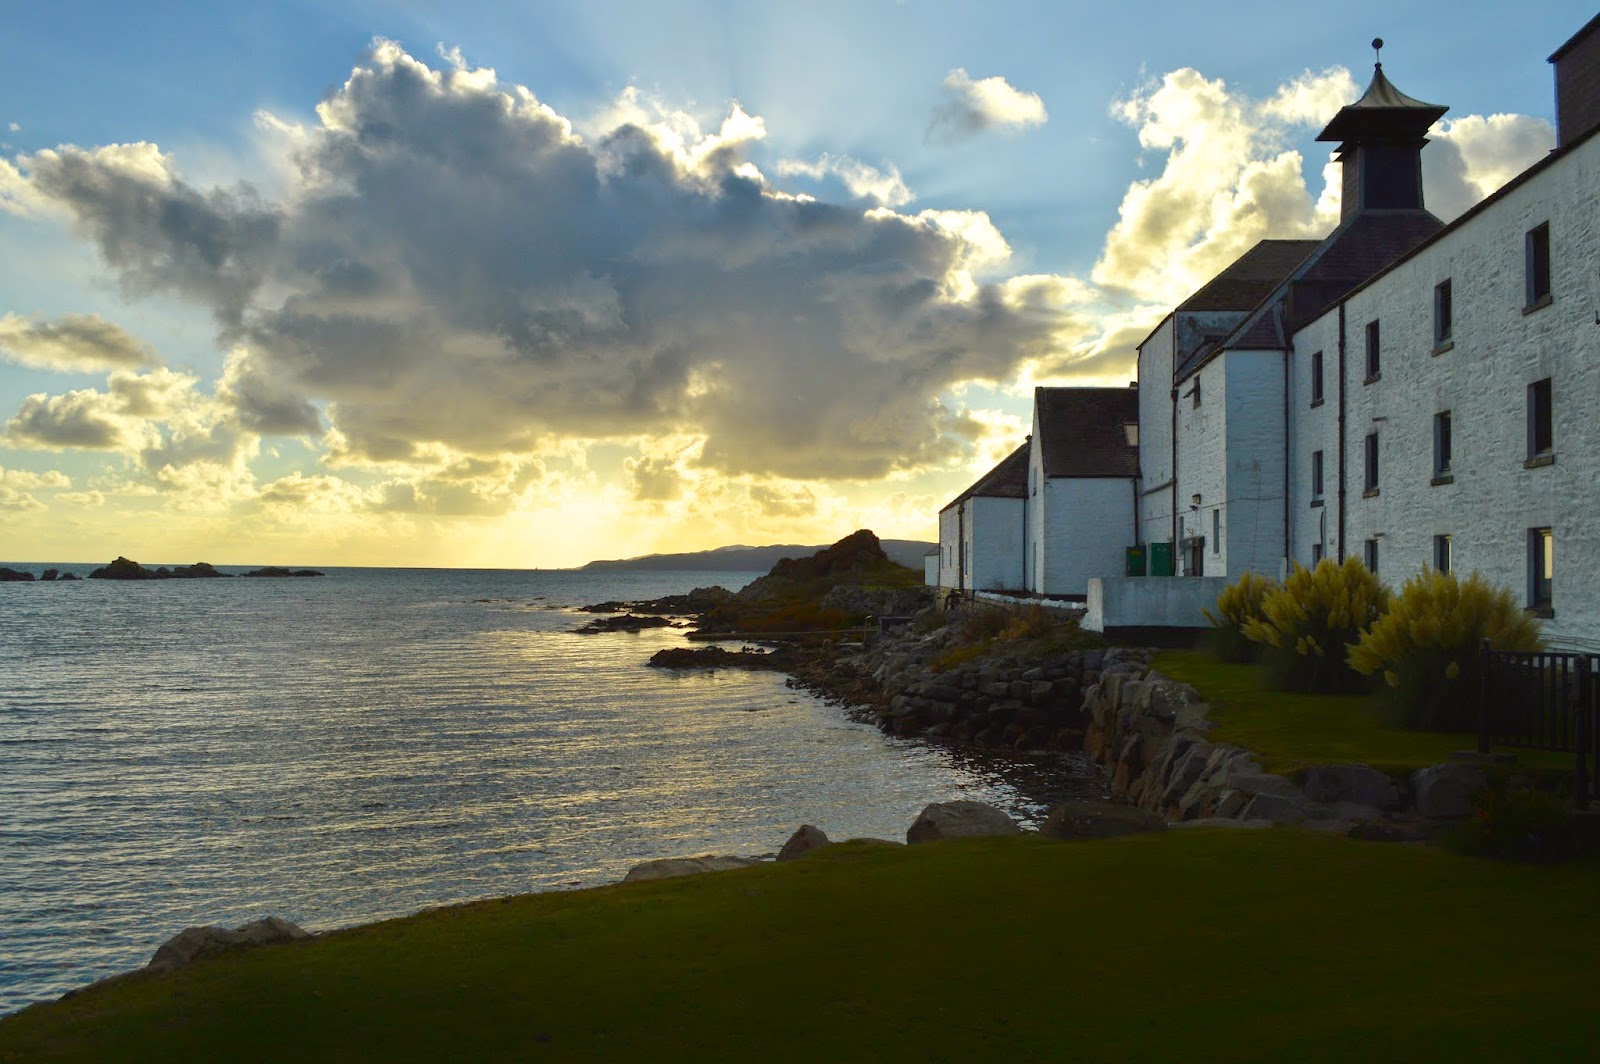 Laphroaig Distillery at sunset, Islay, Scotland